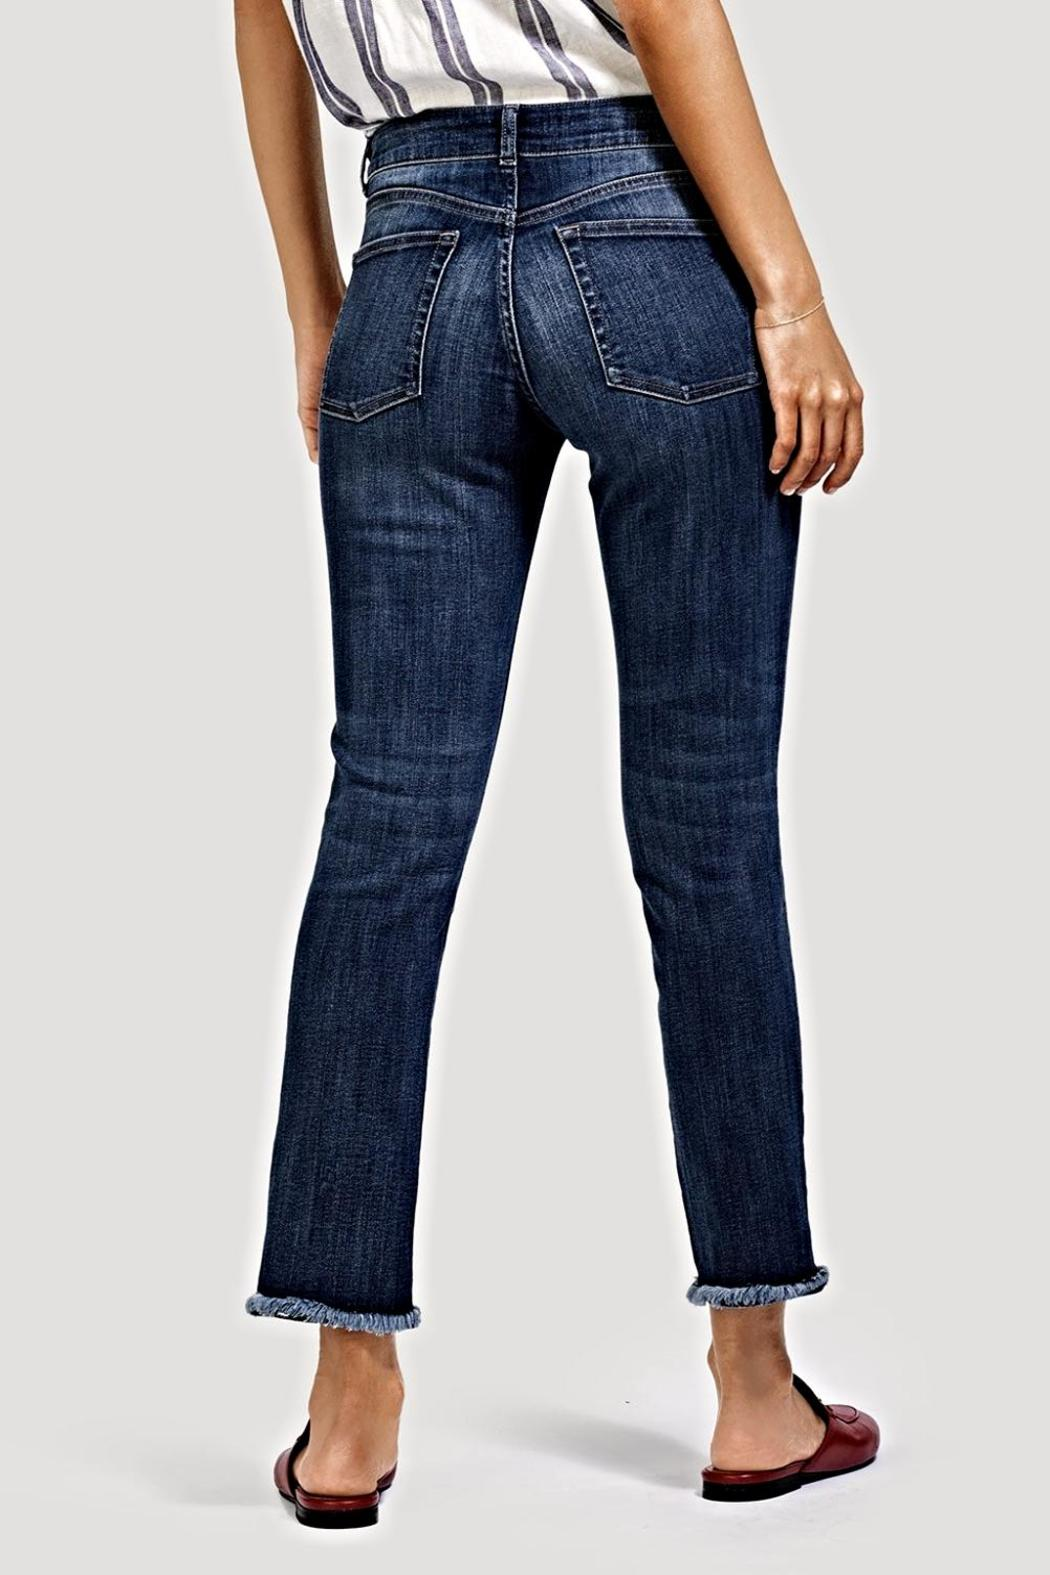 DL 1961 Mara Straight Jeans - Side Cropped Image